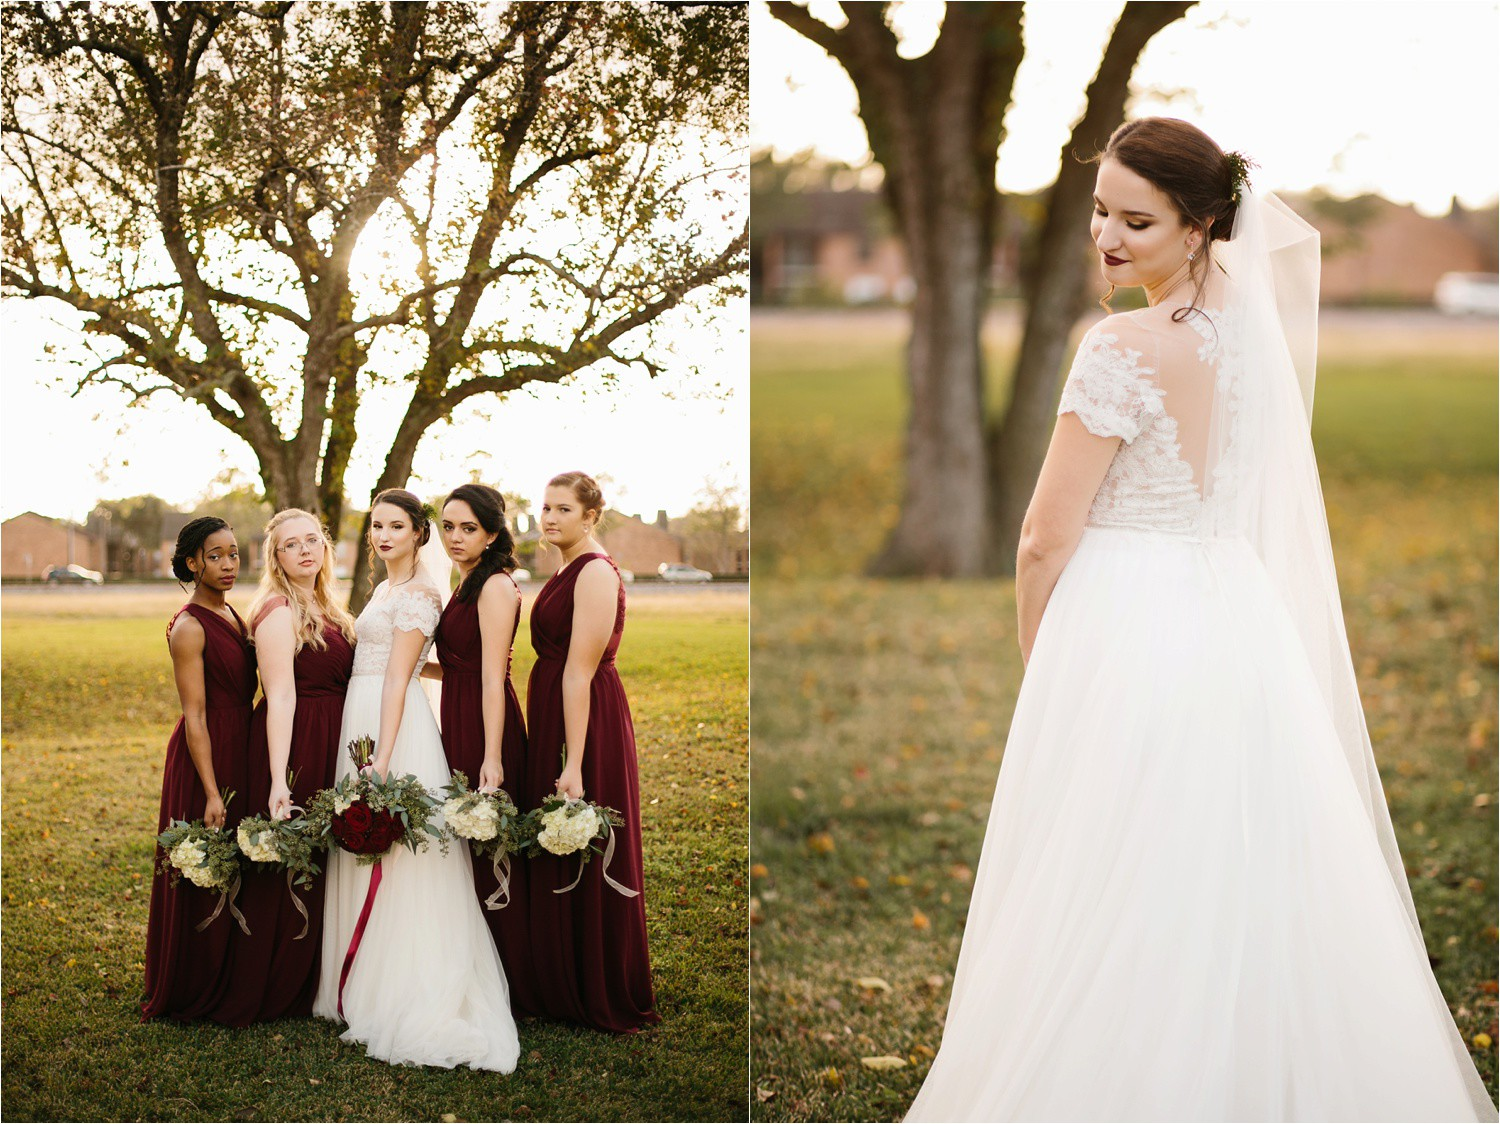 Alaina + Josh __ a wintertime wedding in Houston, TX with Christmas accents and a BHLDN dress by North Texas Wedding Photographer Rachel Meagan Photography _ 15